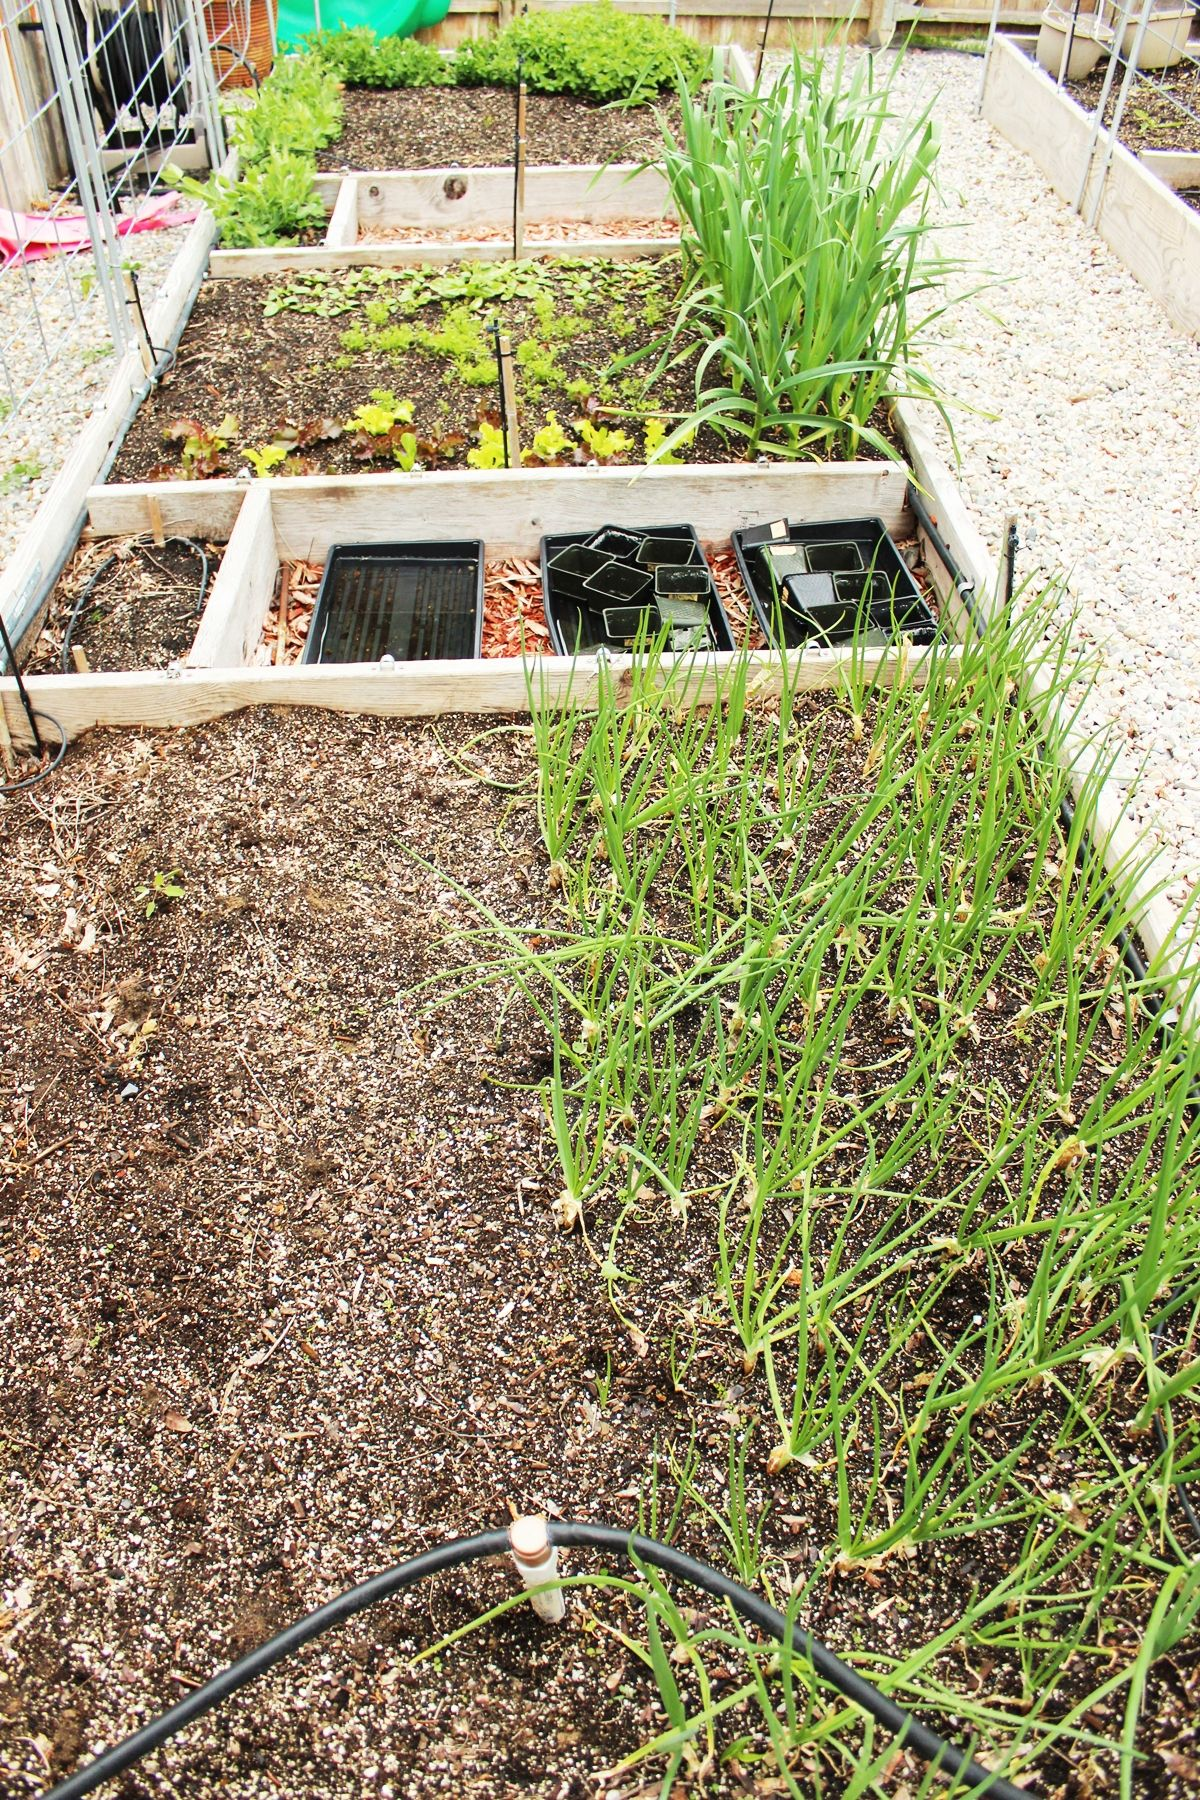 Raised Garden Beds 101: Tips on Planning, Building, & Using